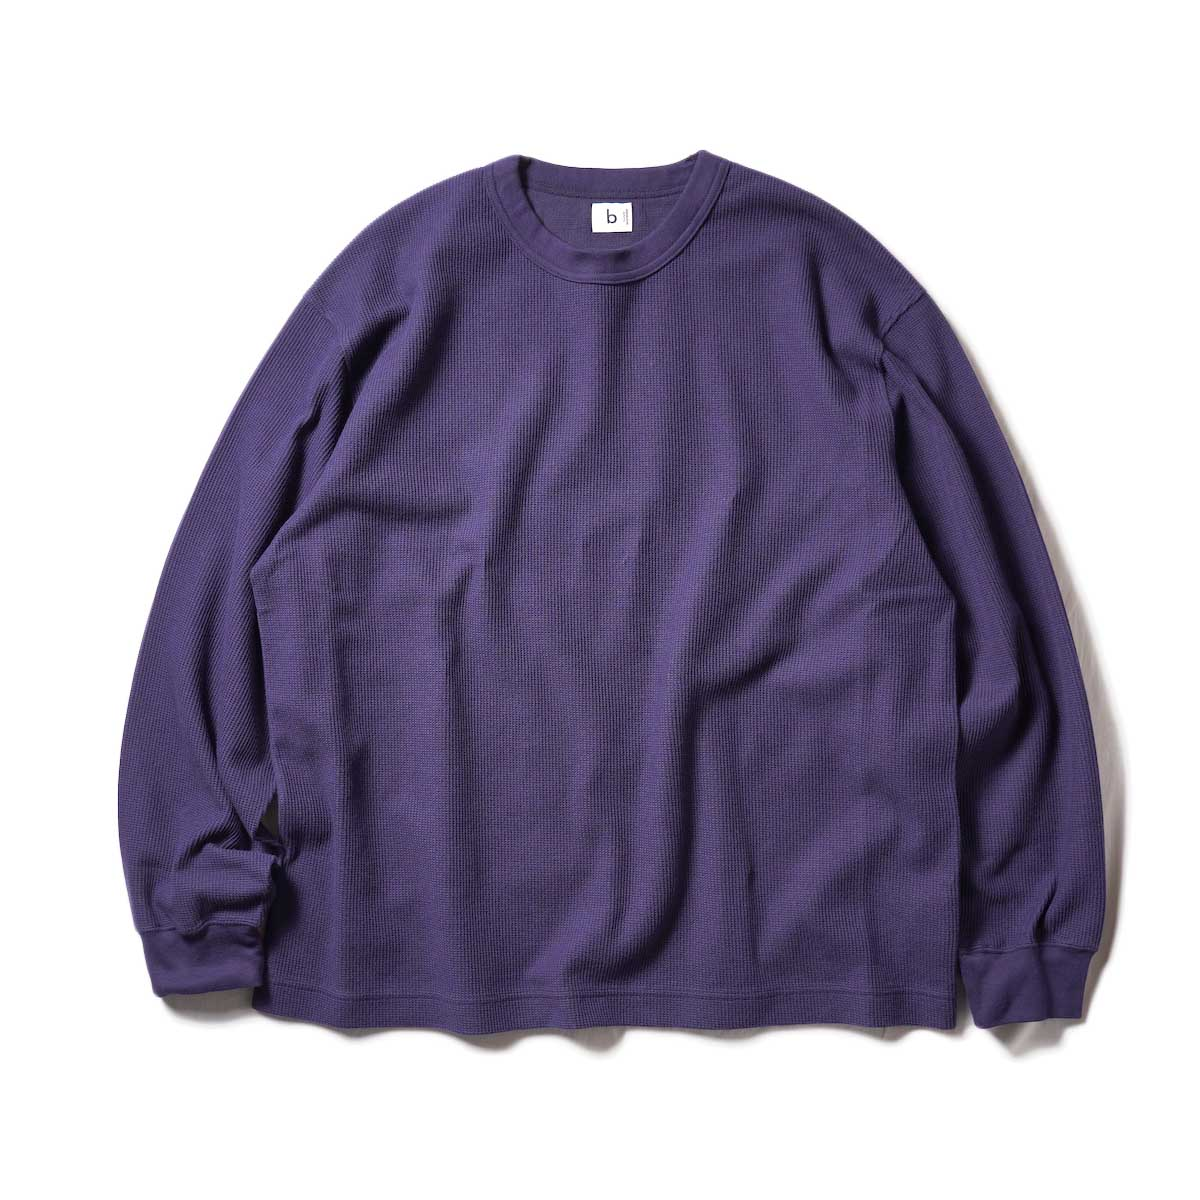 blurhms / Rough&Smooth Thermal Crew-neck L/S (Purple Navy)